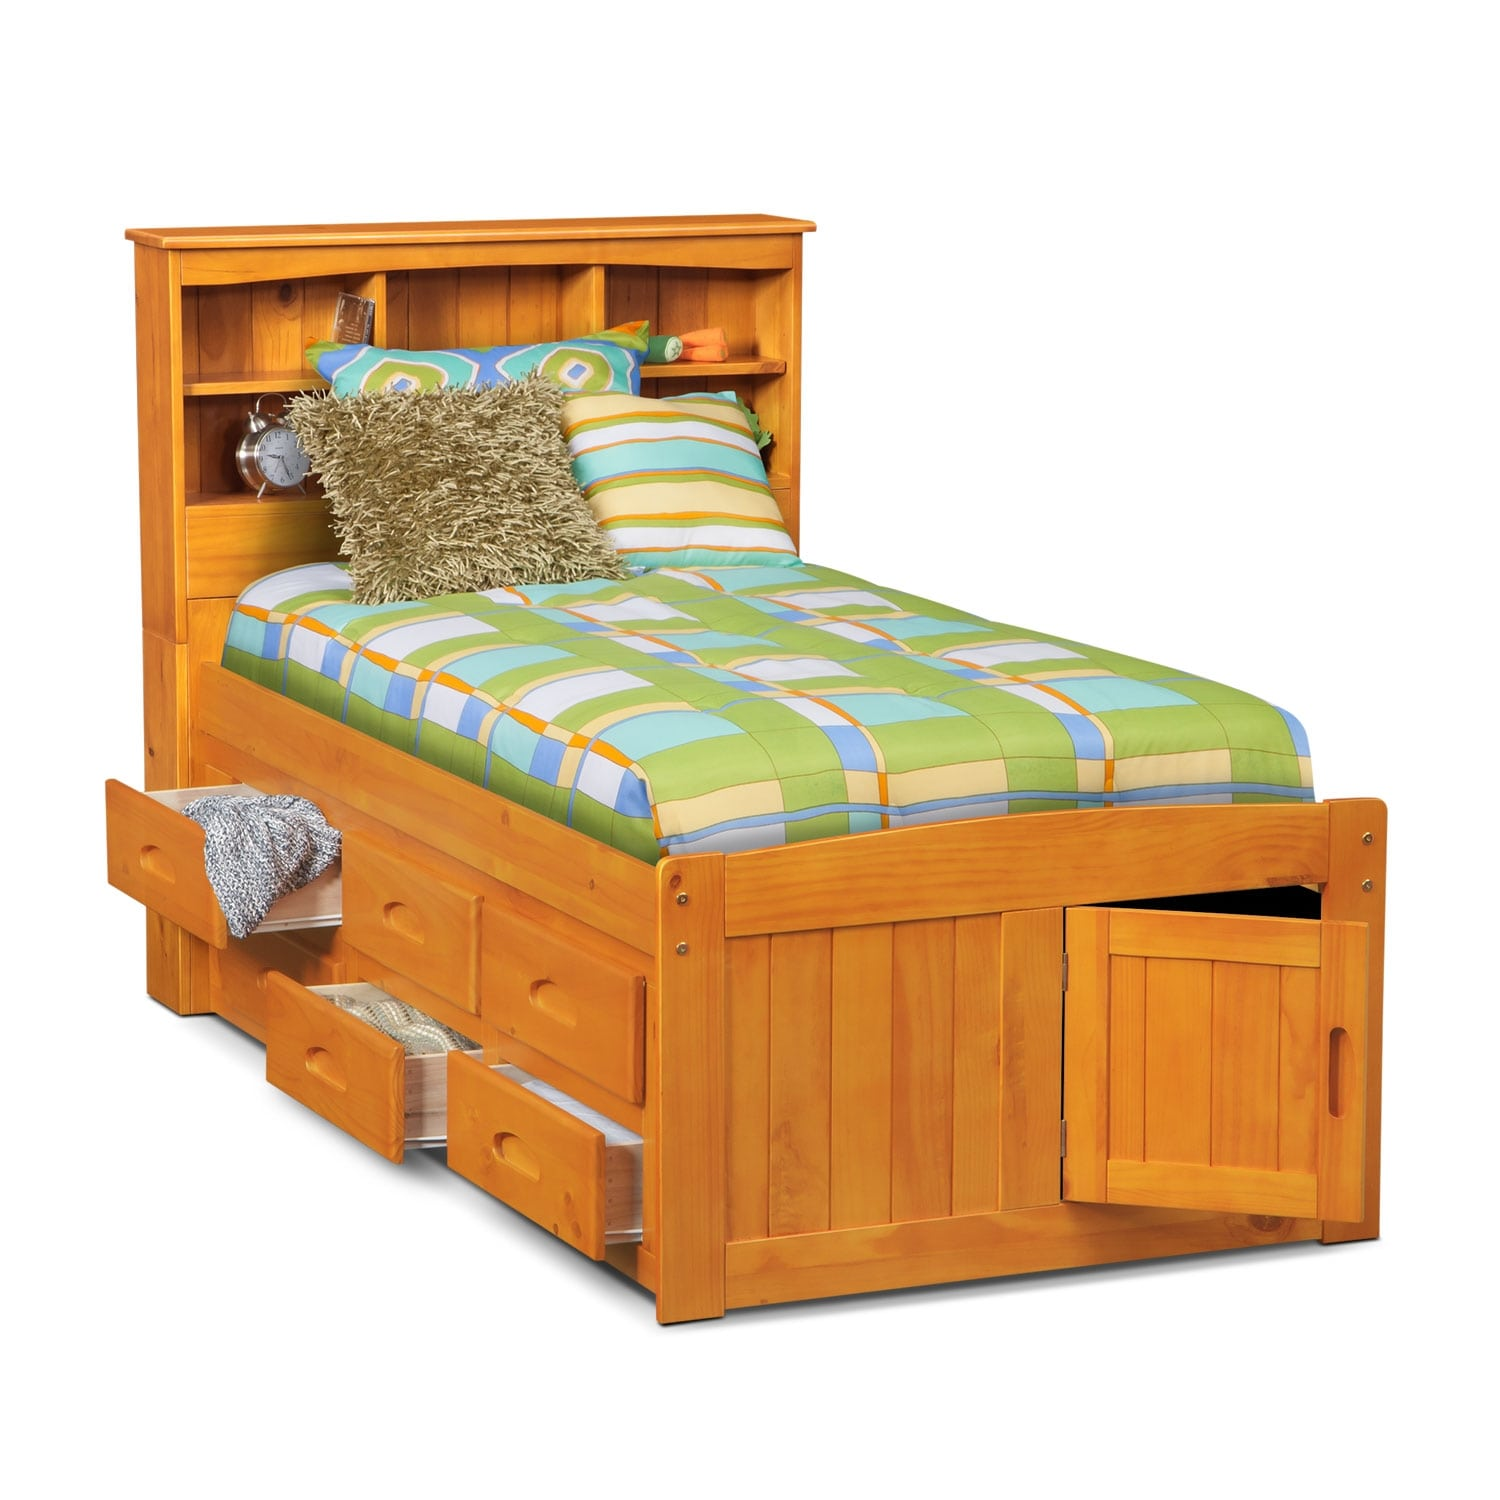 Ranger twin bookcase bed with 6 underbed drawers pine american signature furniture American home furniture bedroom sets